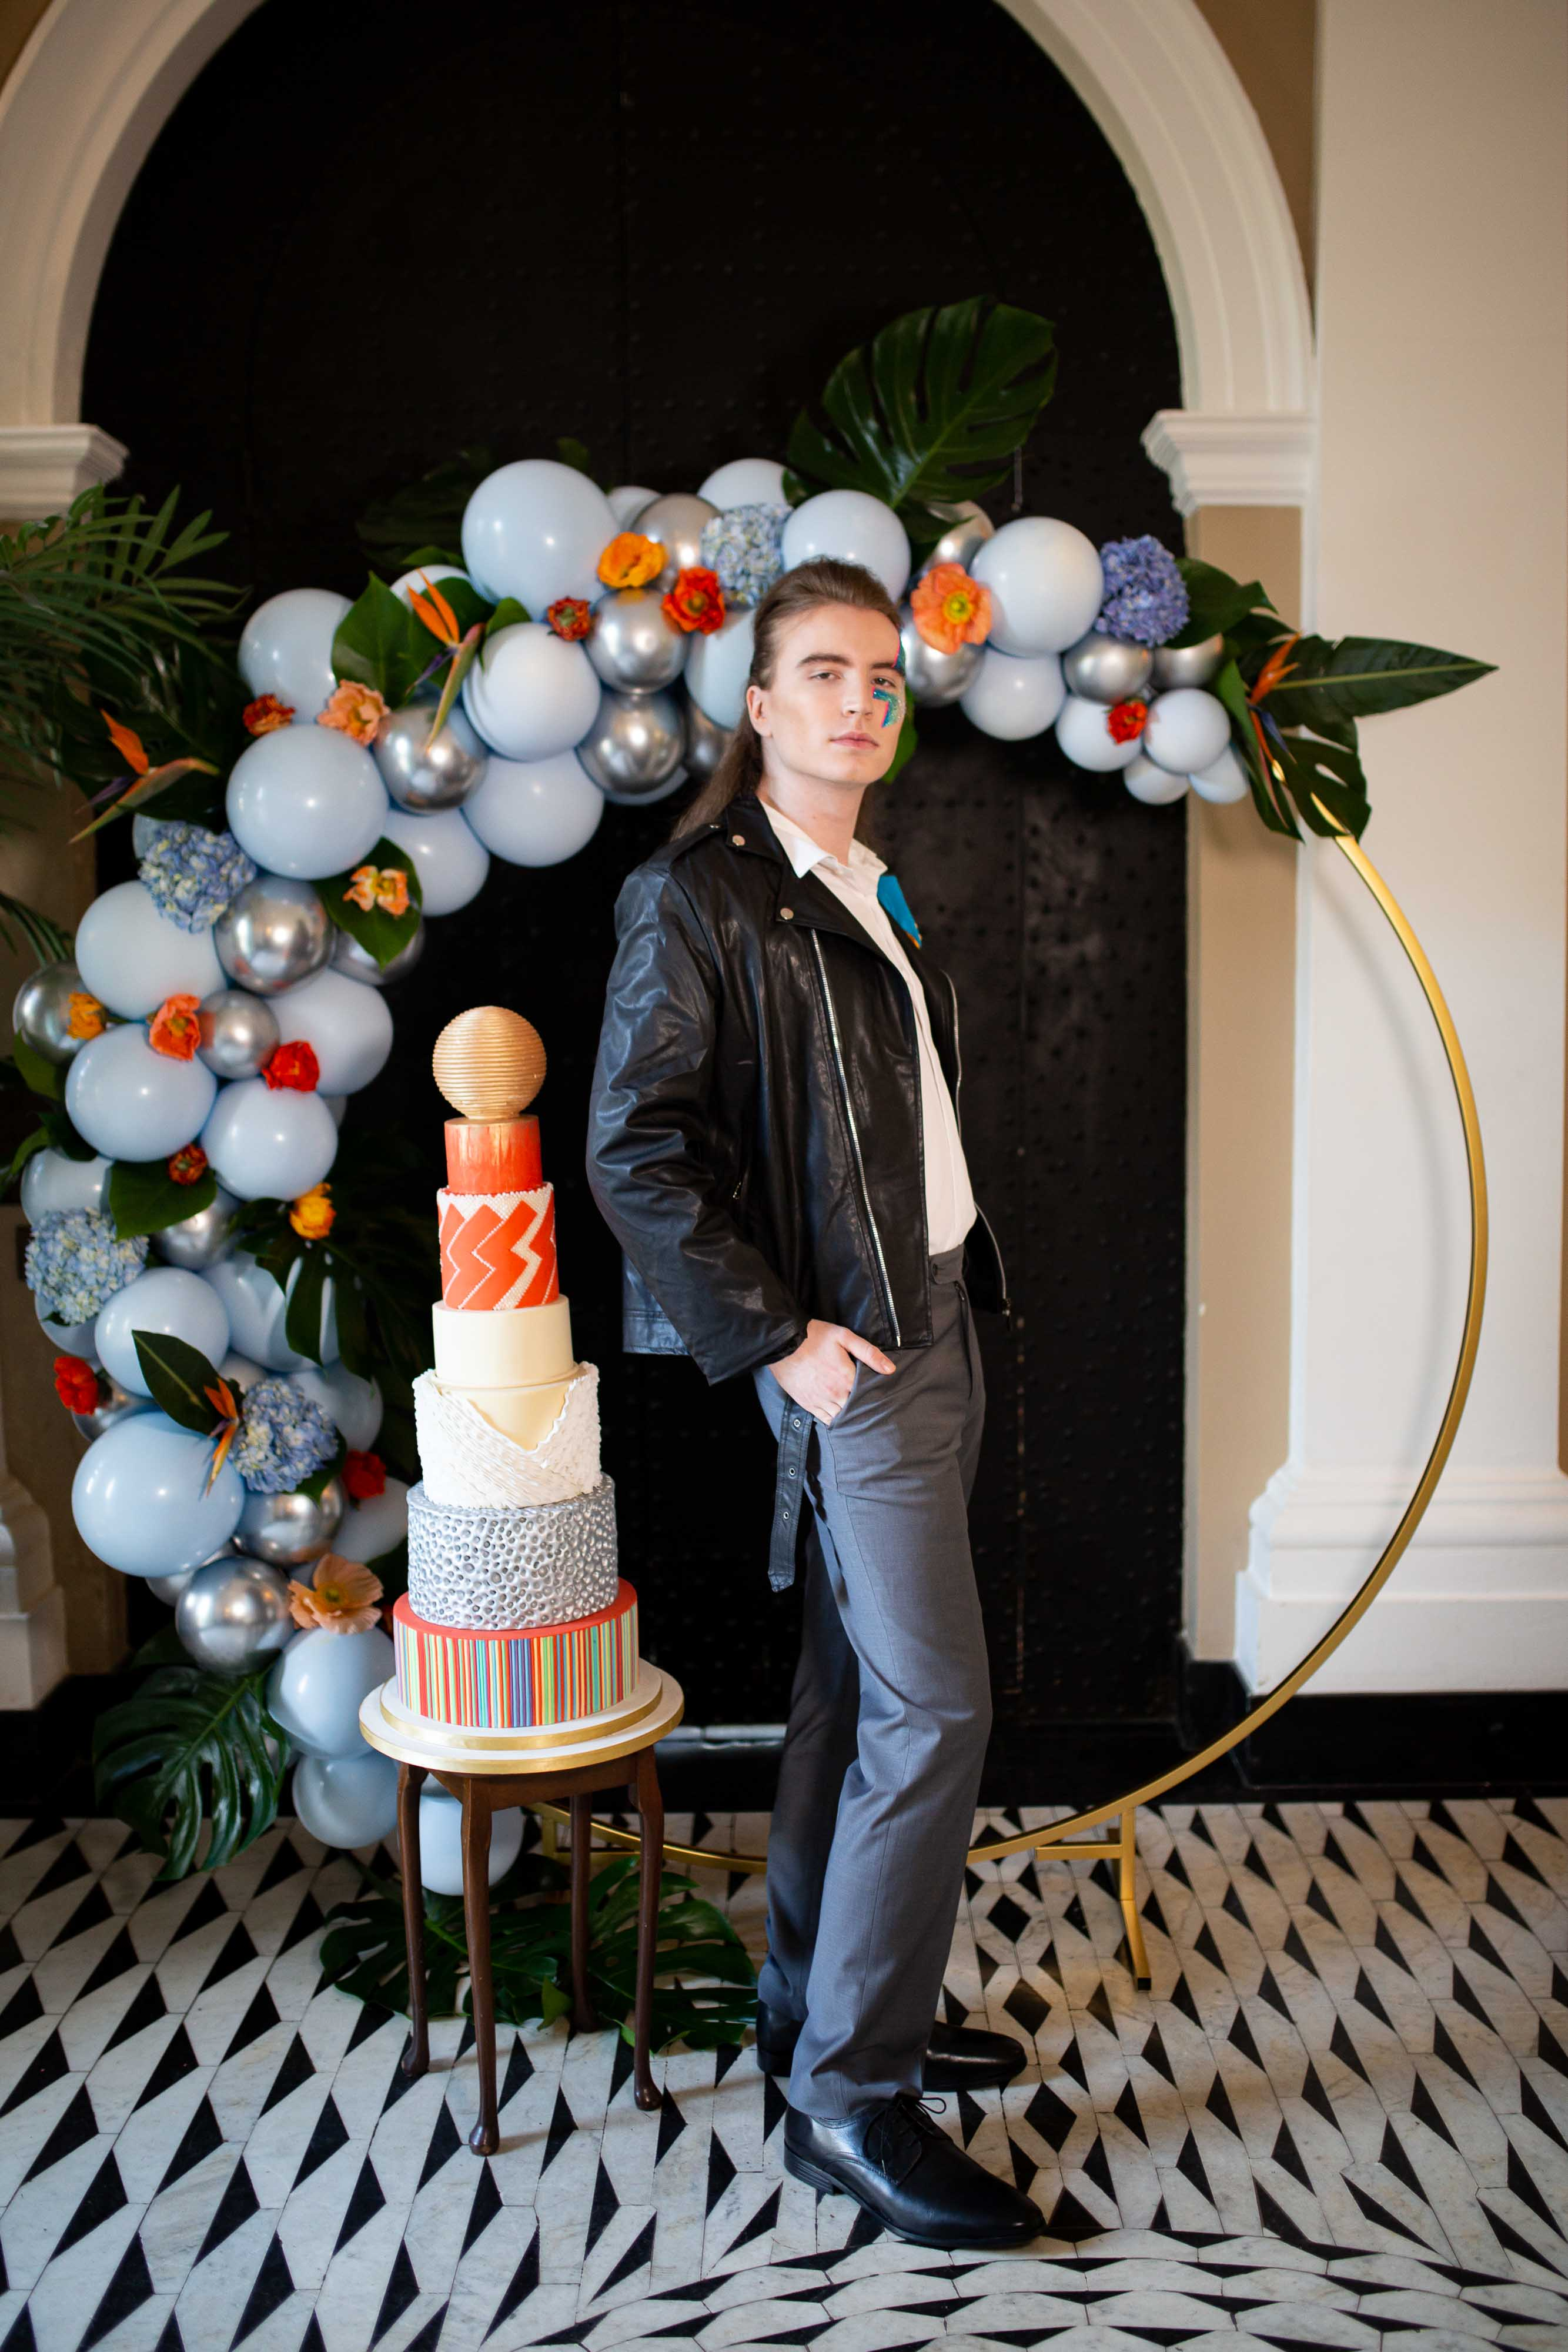 wedding menswear- alternative groomswear- music themed wedding- bake to the future- florence berry photography- extravagant wedding cake- unique wedding balloons- david bowie wedding